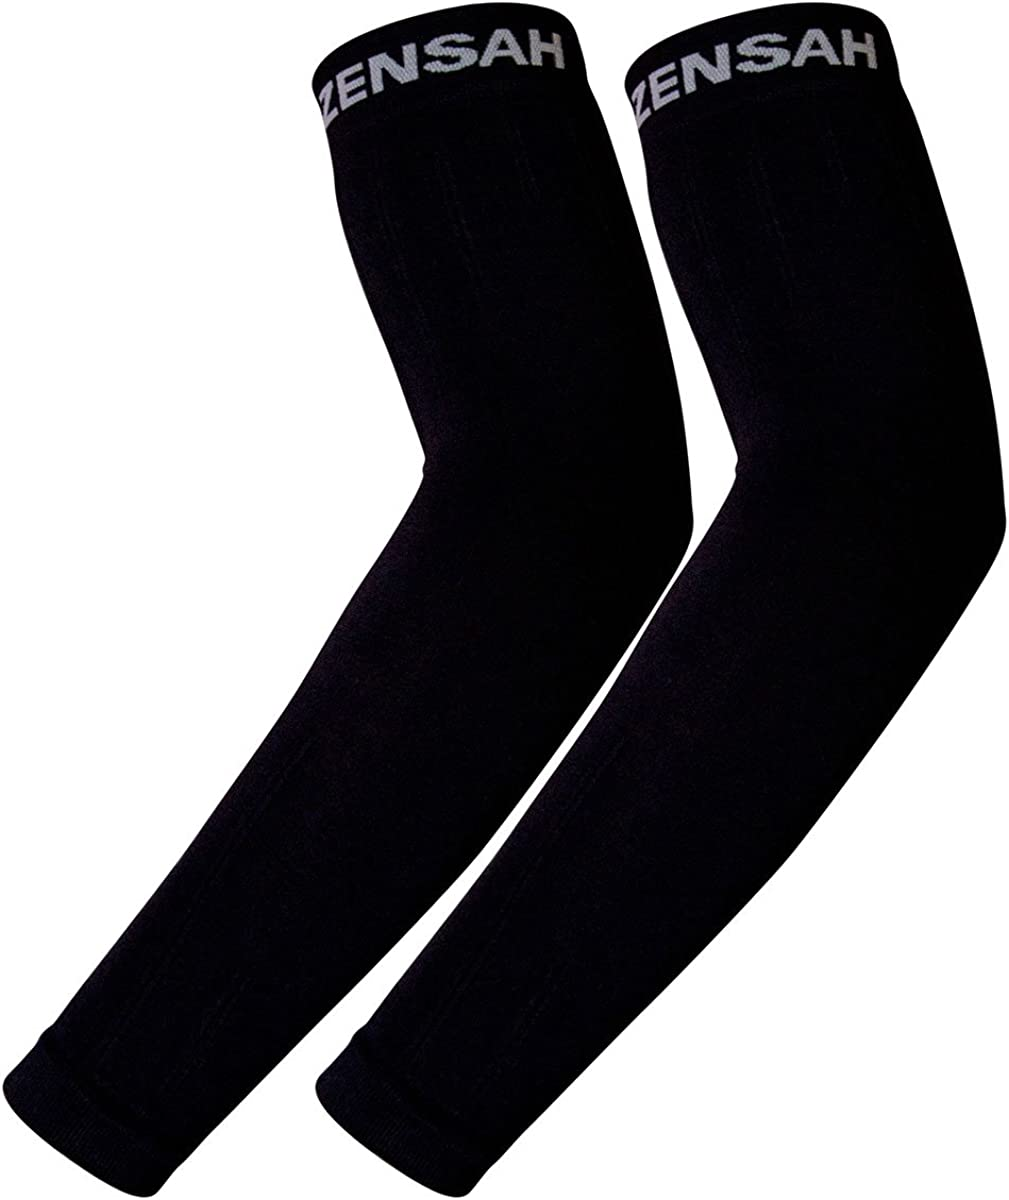 Zensah Compression Arm Sleeves Sun Thermal Regulating sleeve for Men and Women UV protection